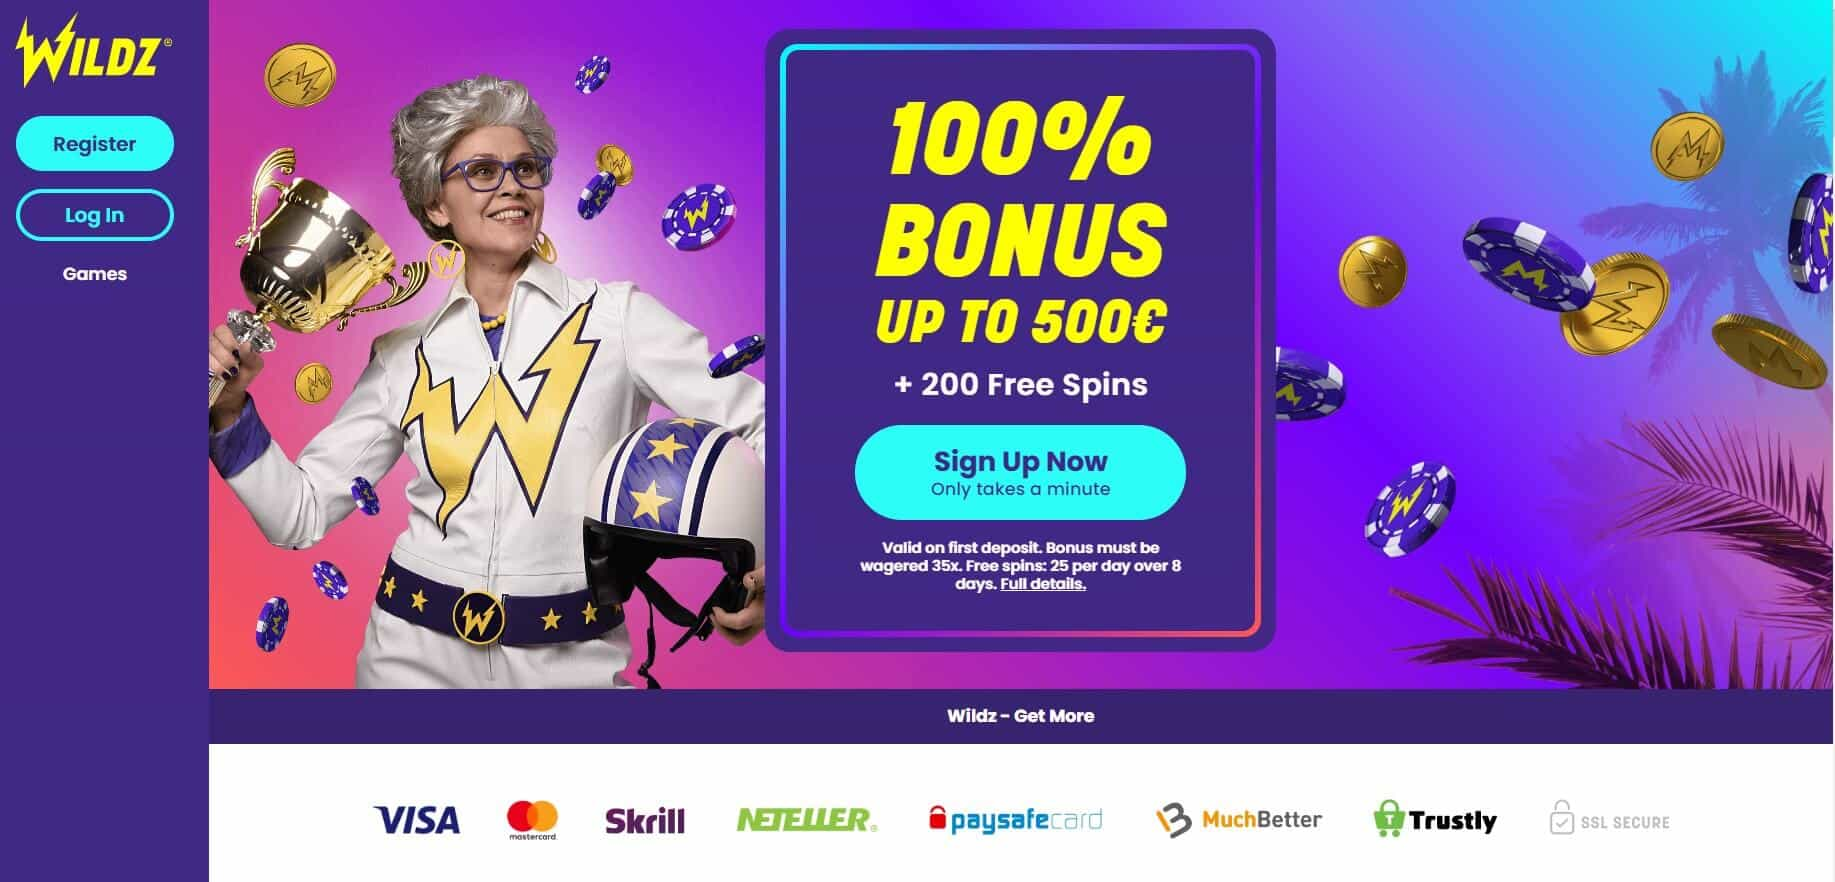 Wildz casino homepage